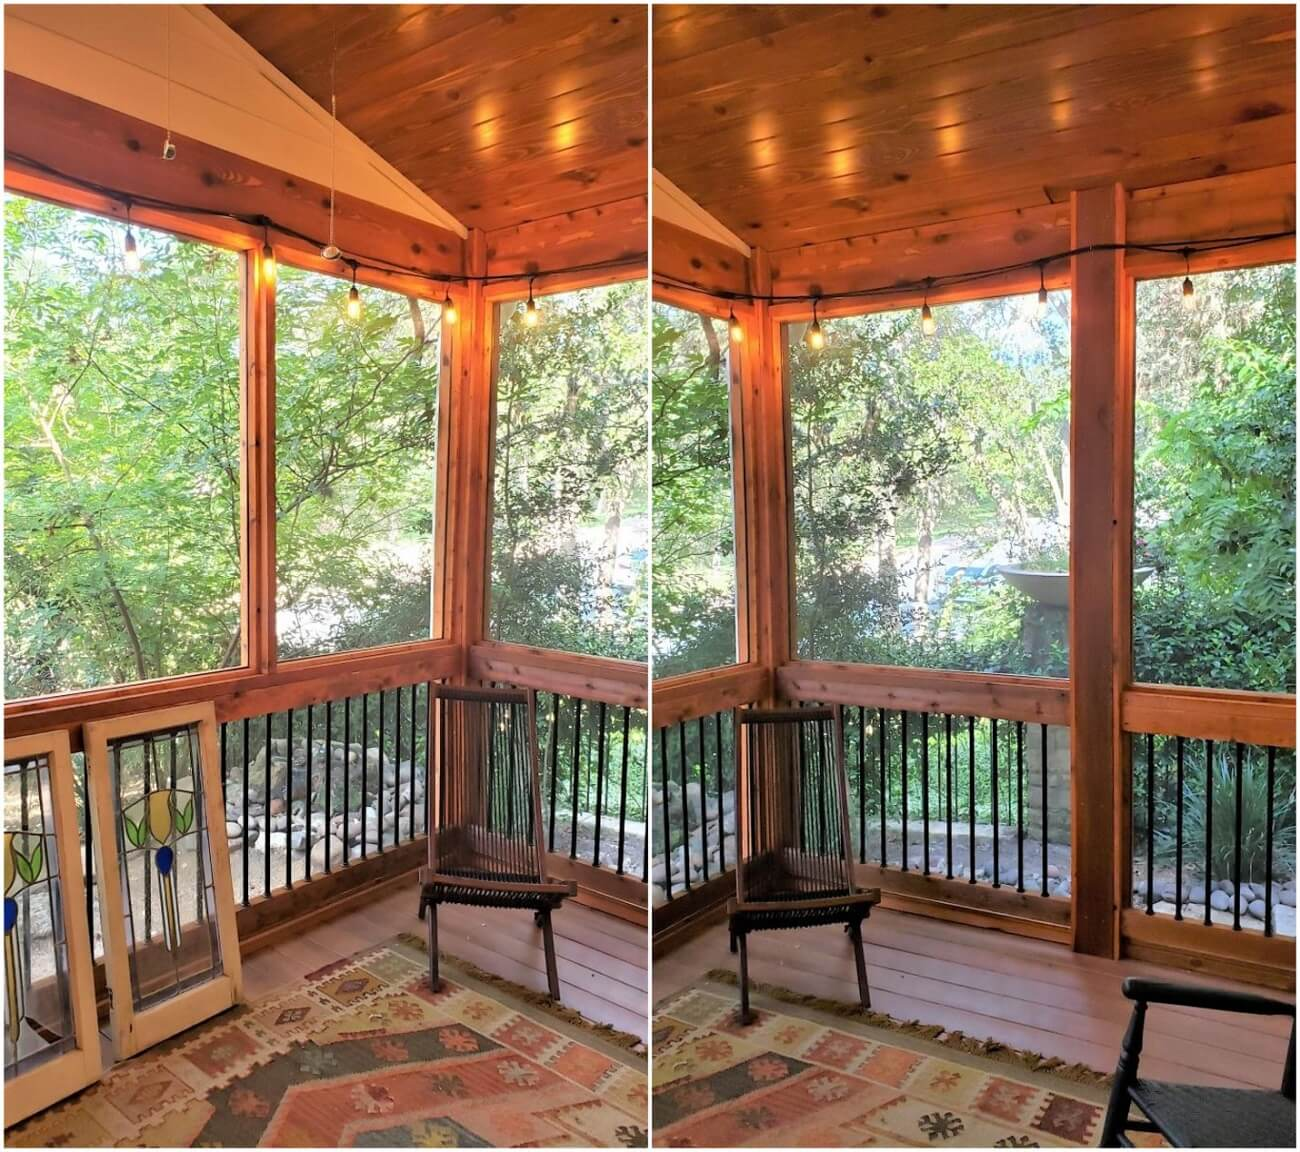 New screened porch interior view